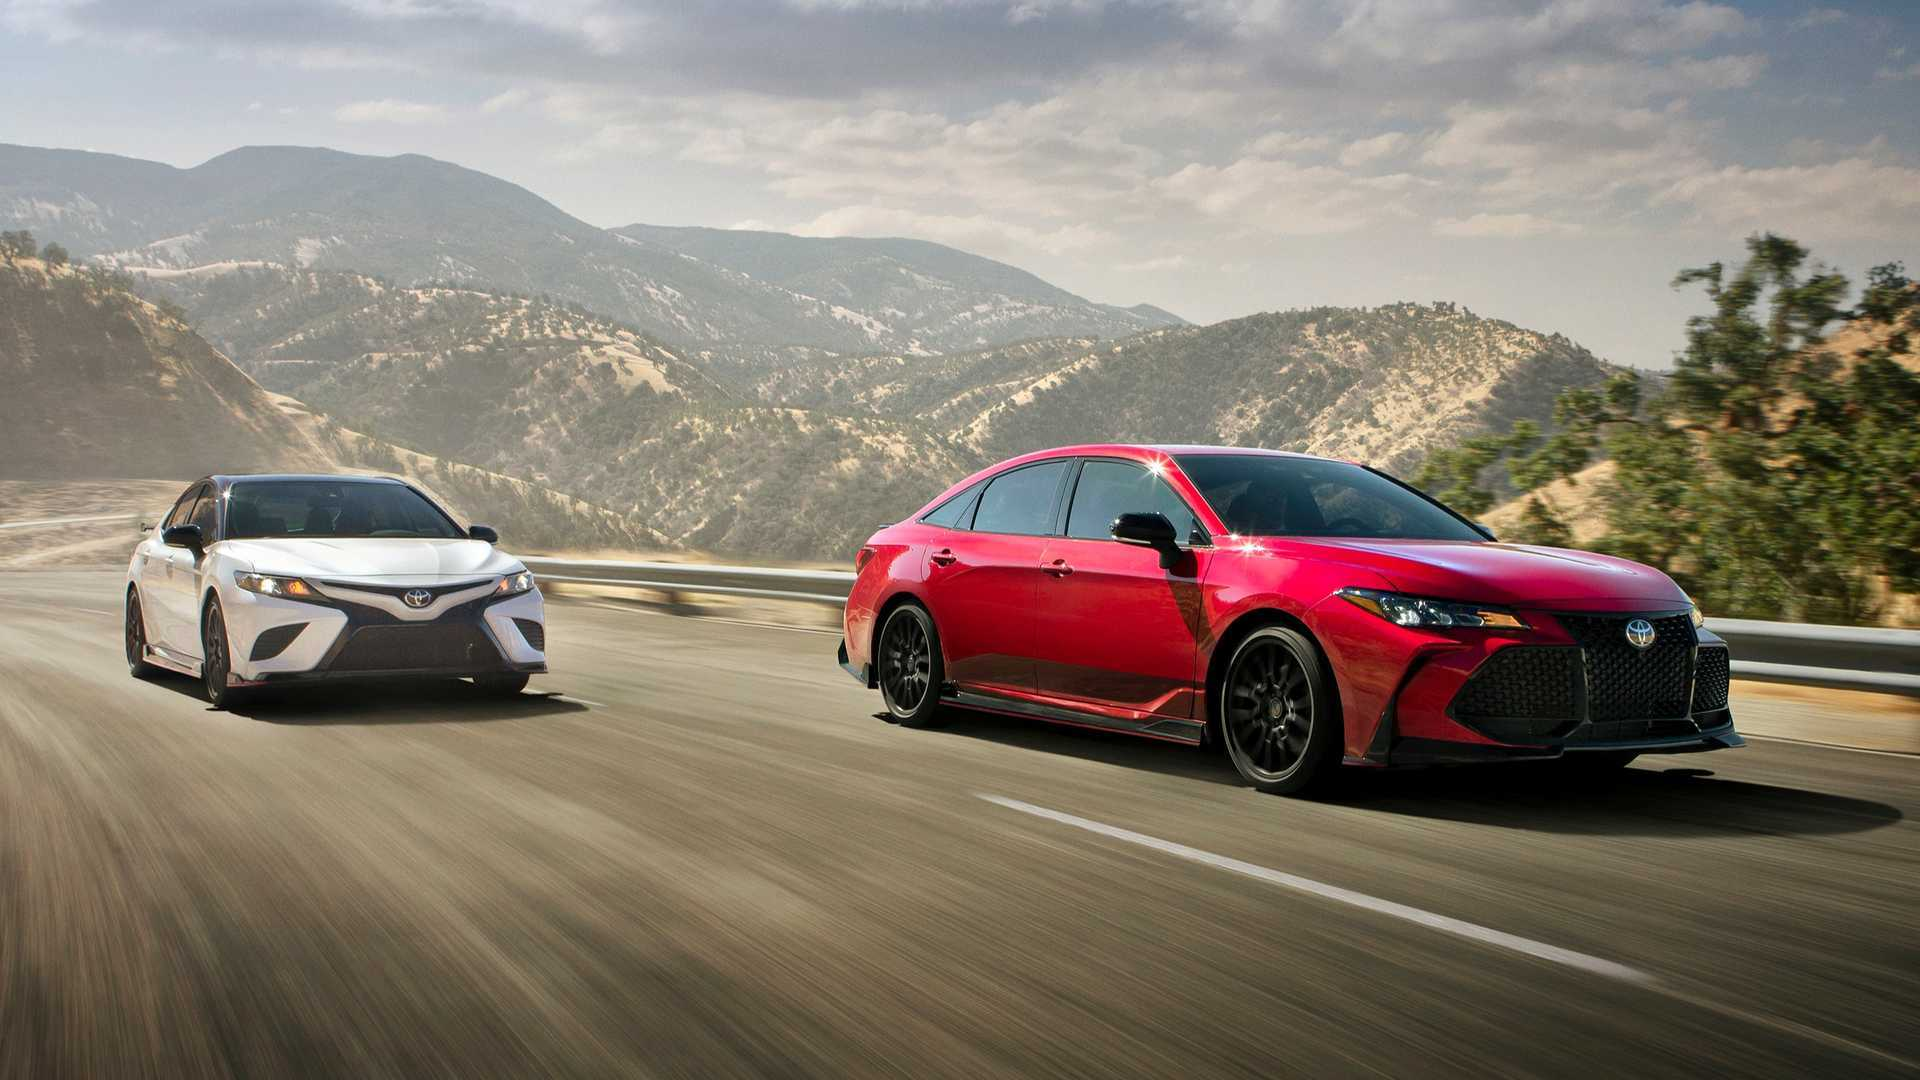 18 Great Avalon Toyota 2020 New Concept Redesign by Avalon Toyota 2020 New Concept